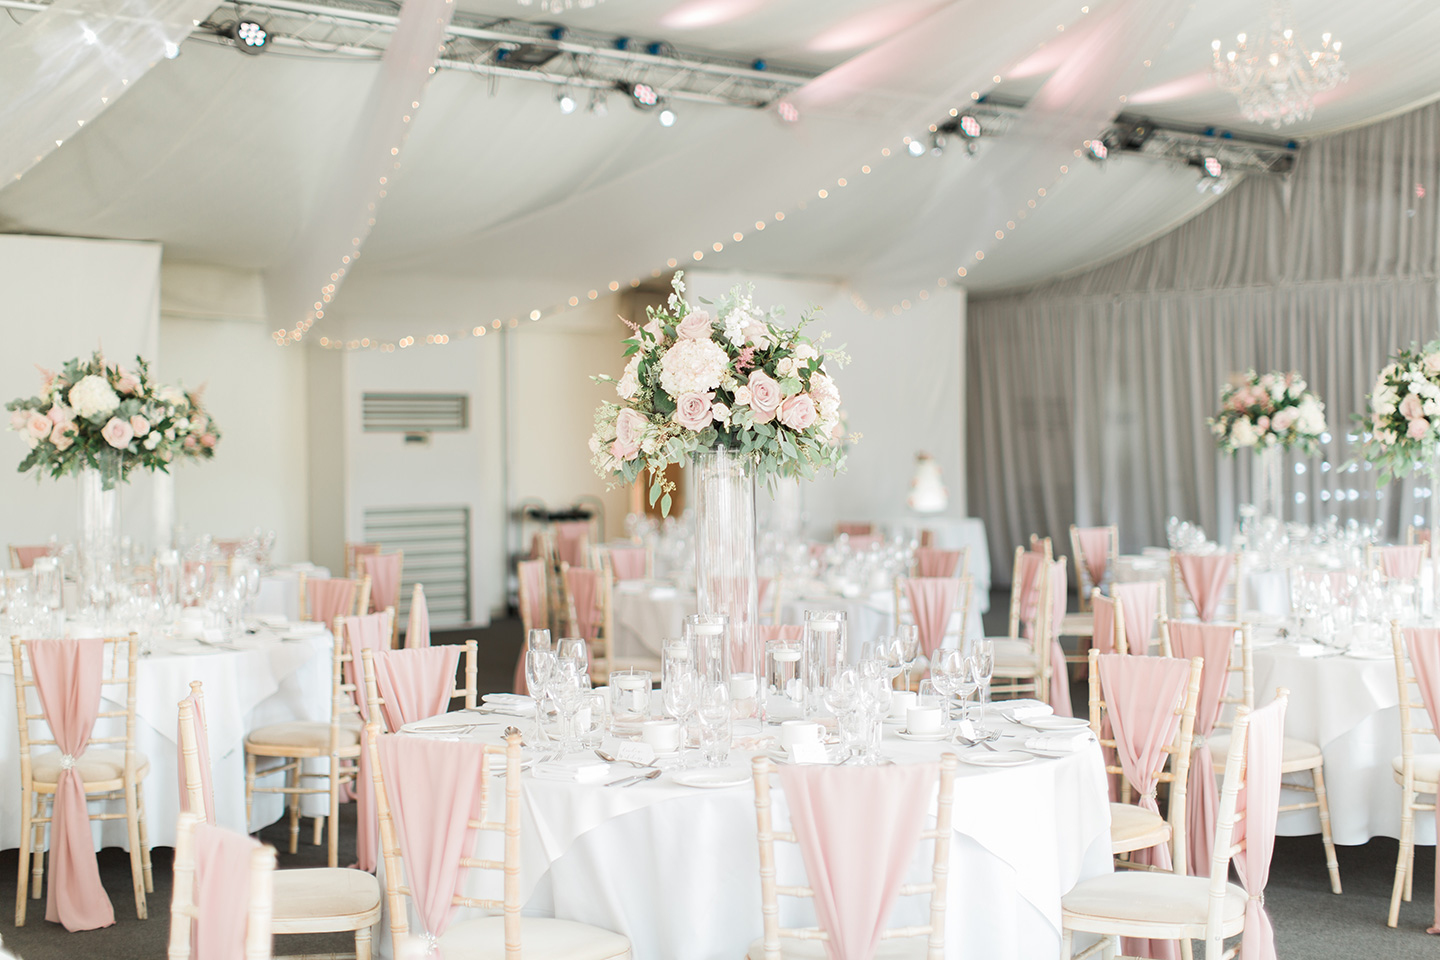 The Pavilion at Braxted Park wedding venue in Essex is set up for an elegant wedding breakfast